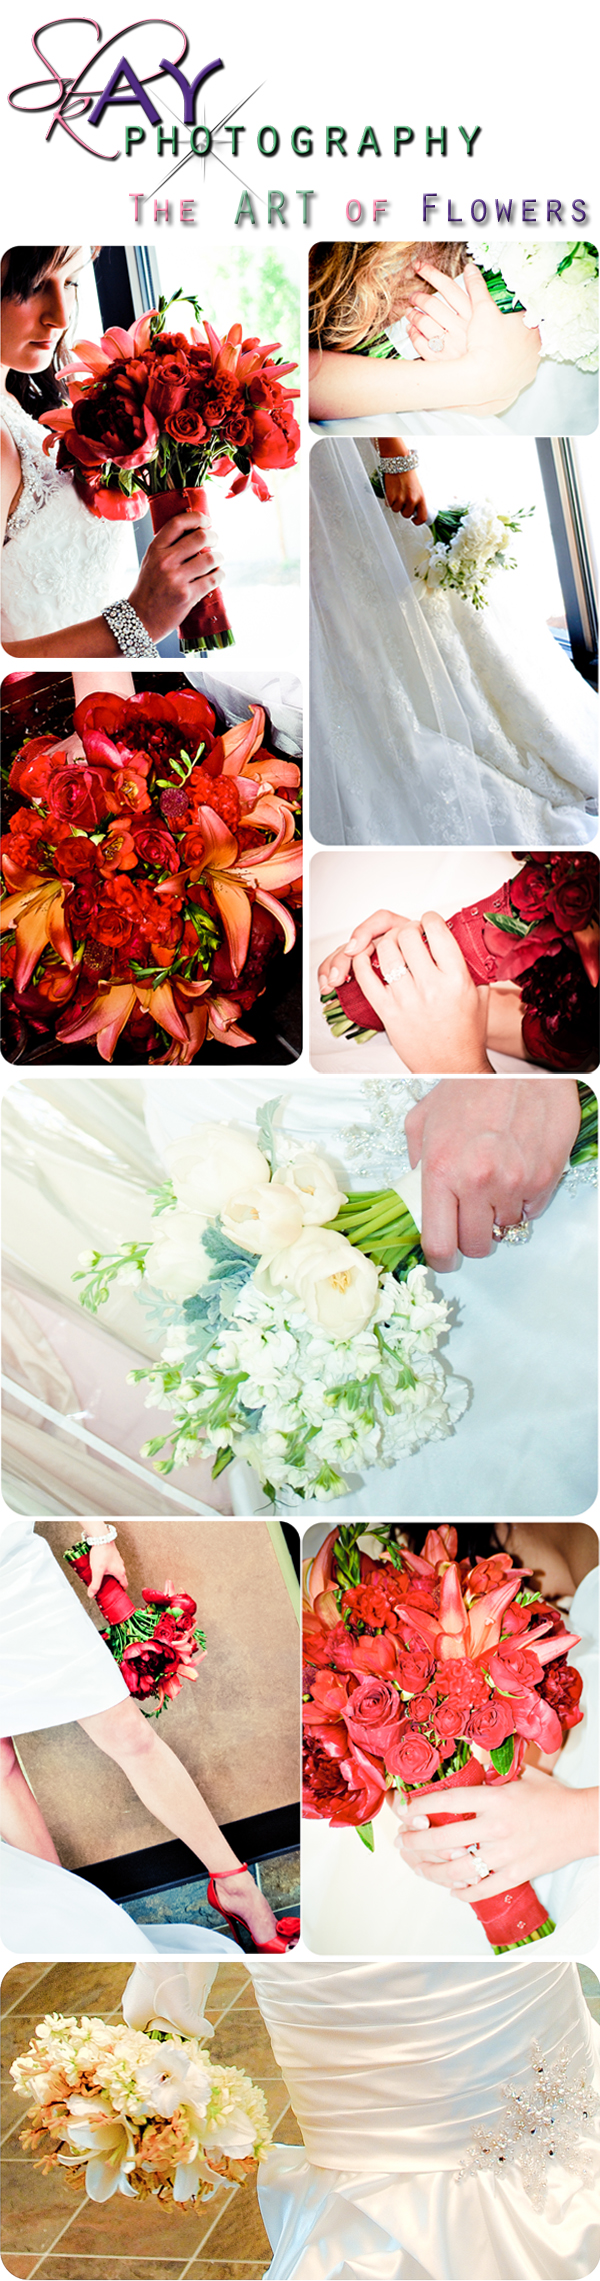 Wedding Bouquets and Photography